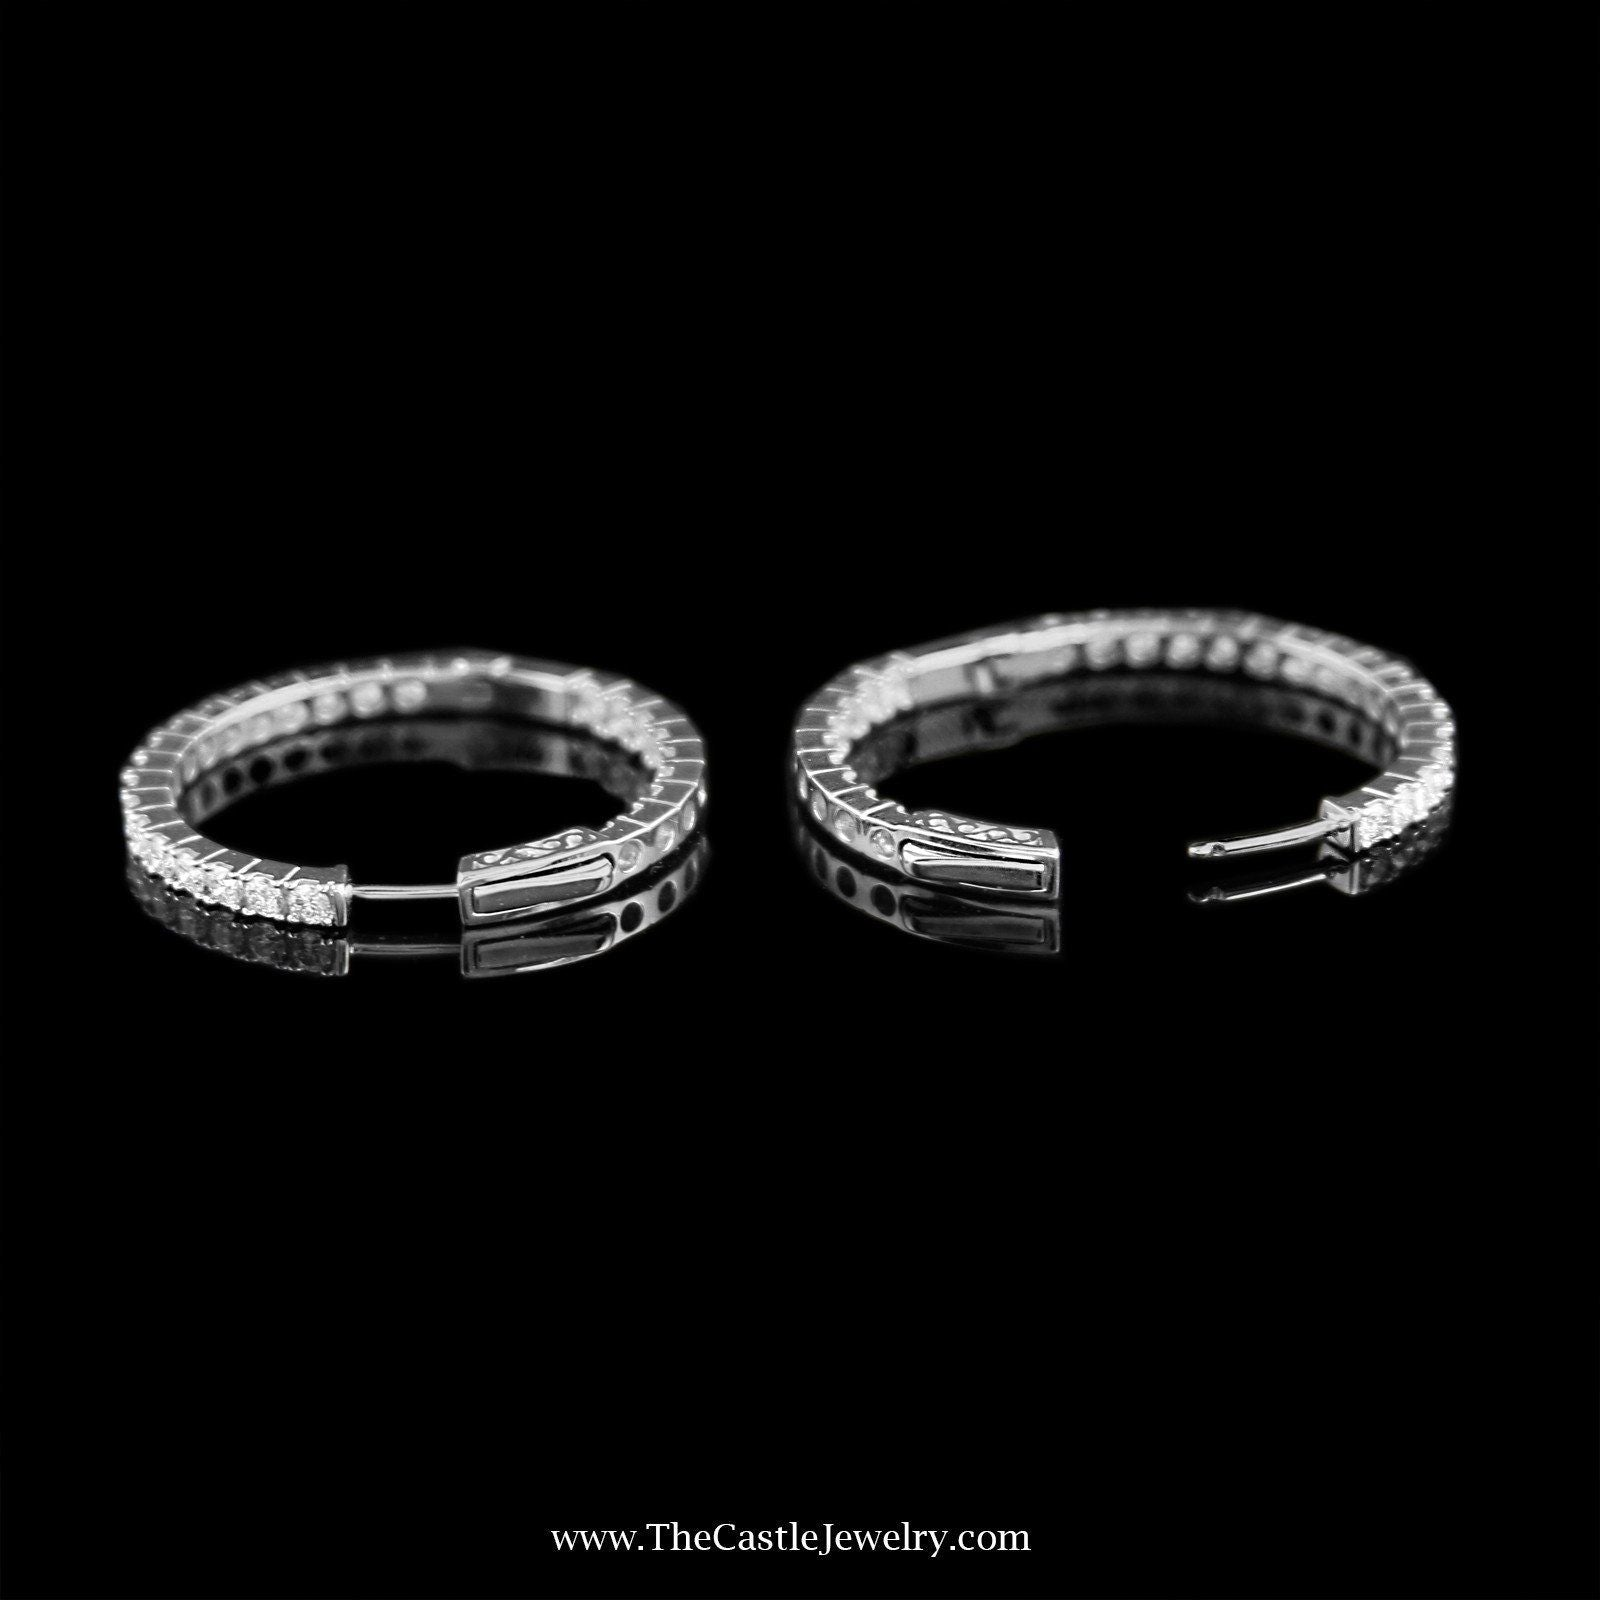 SPECIAL! Stunning In & Out 2cttw Diamond Hoops in 14K White Gold-1